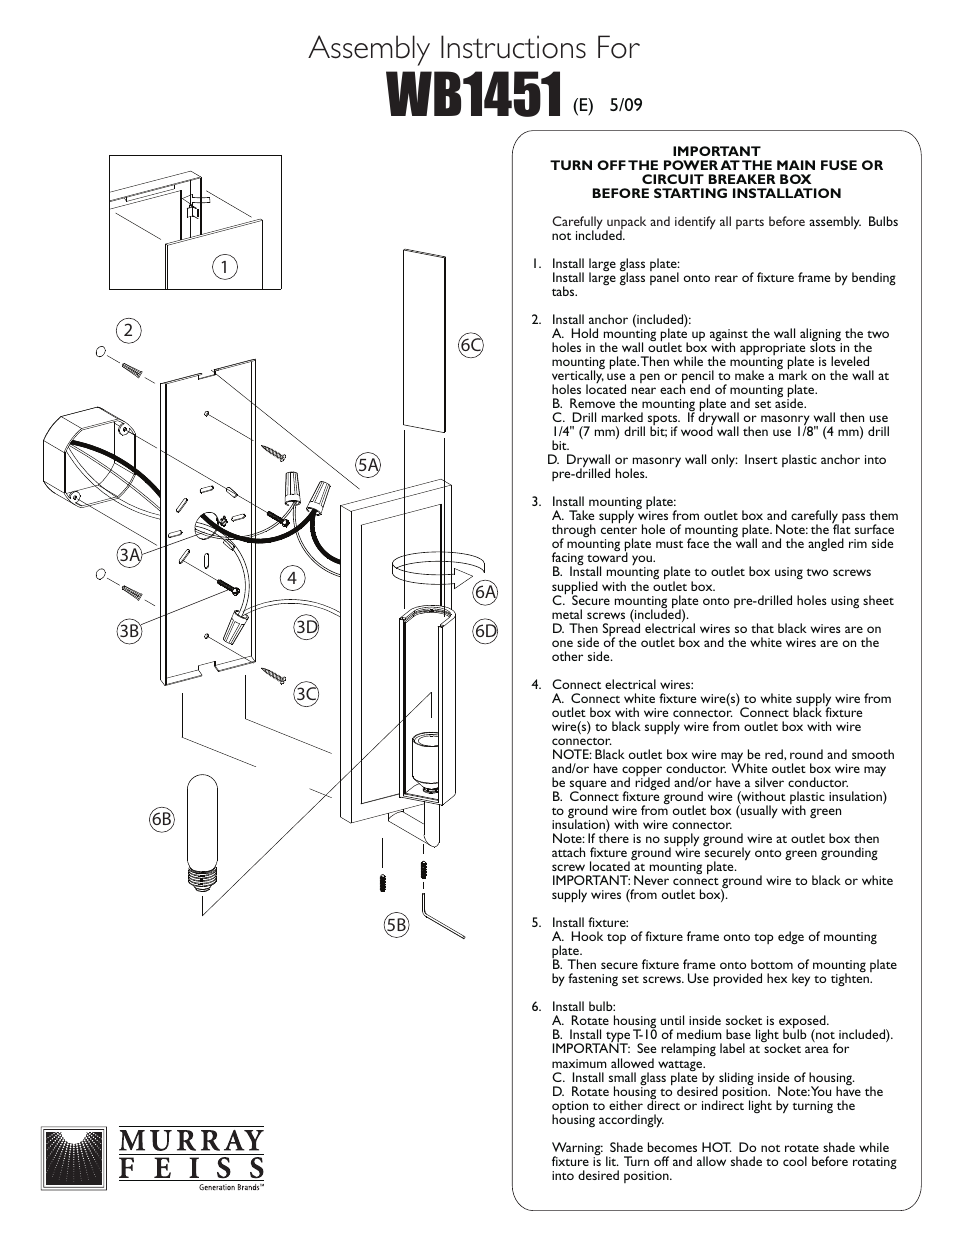 Feiss Wb1451 User Manual 1 Page Murray Fuse Box Diagram 6